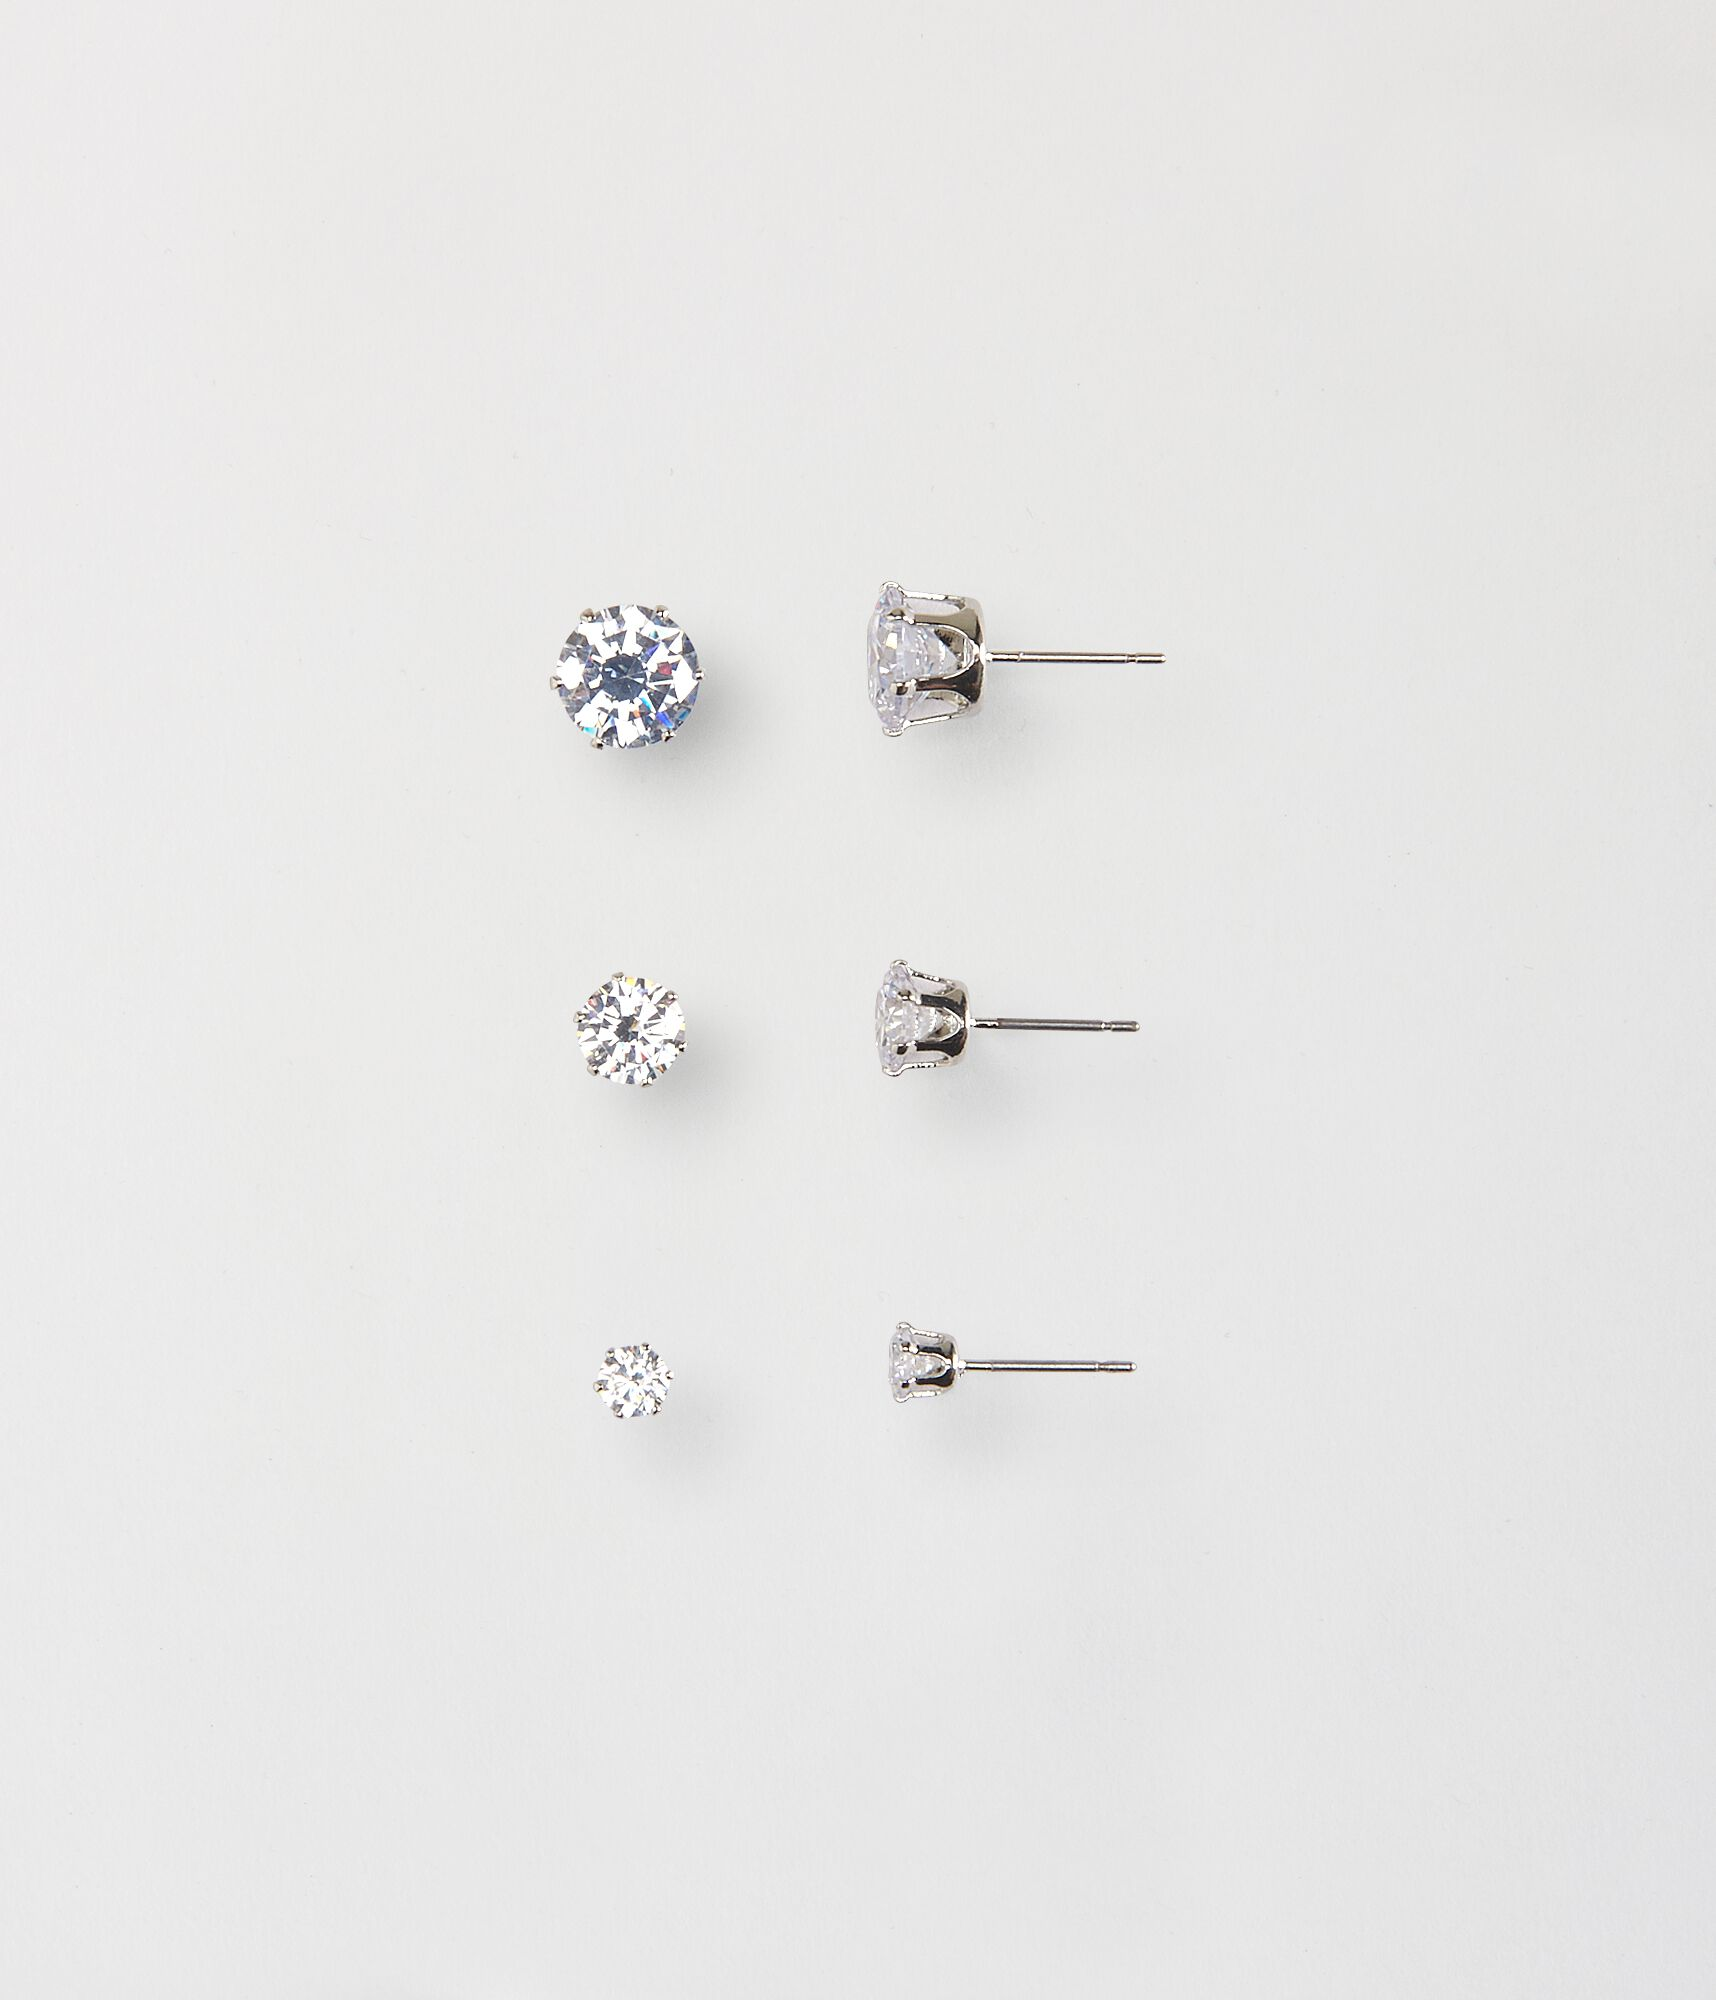 zirconia earrings zoom earring set jon jewellery stud richard cubic